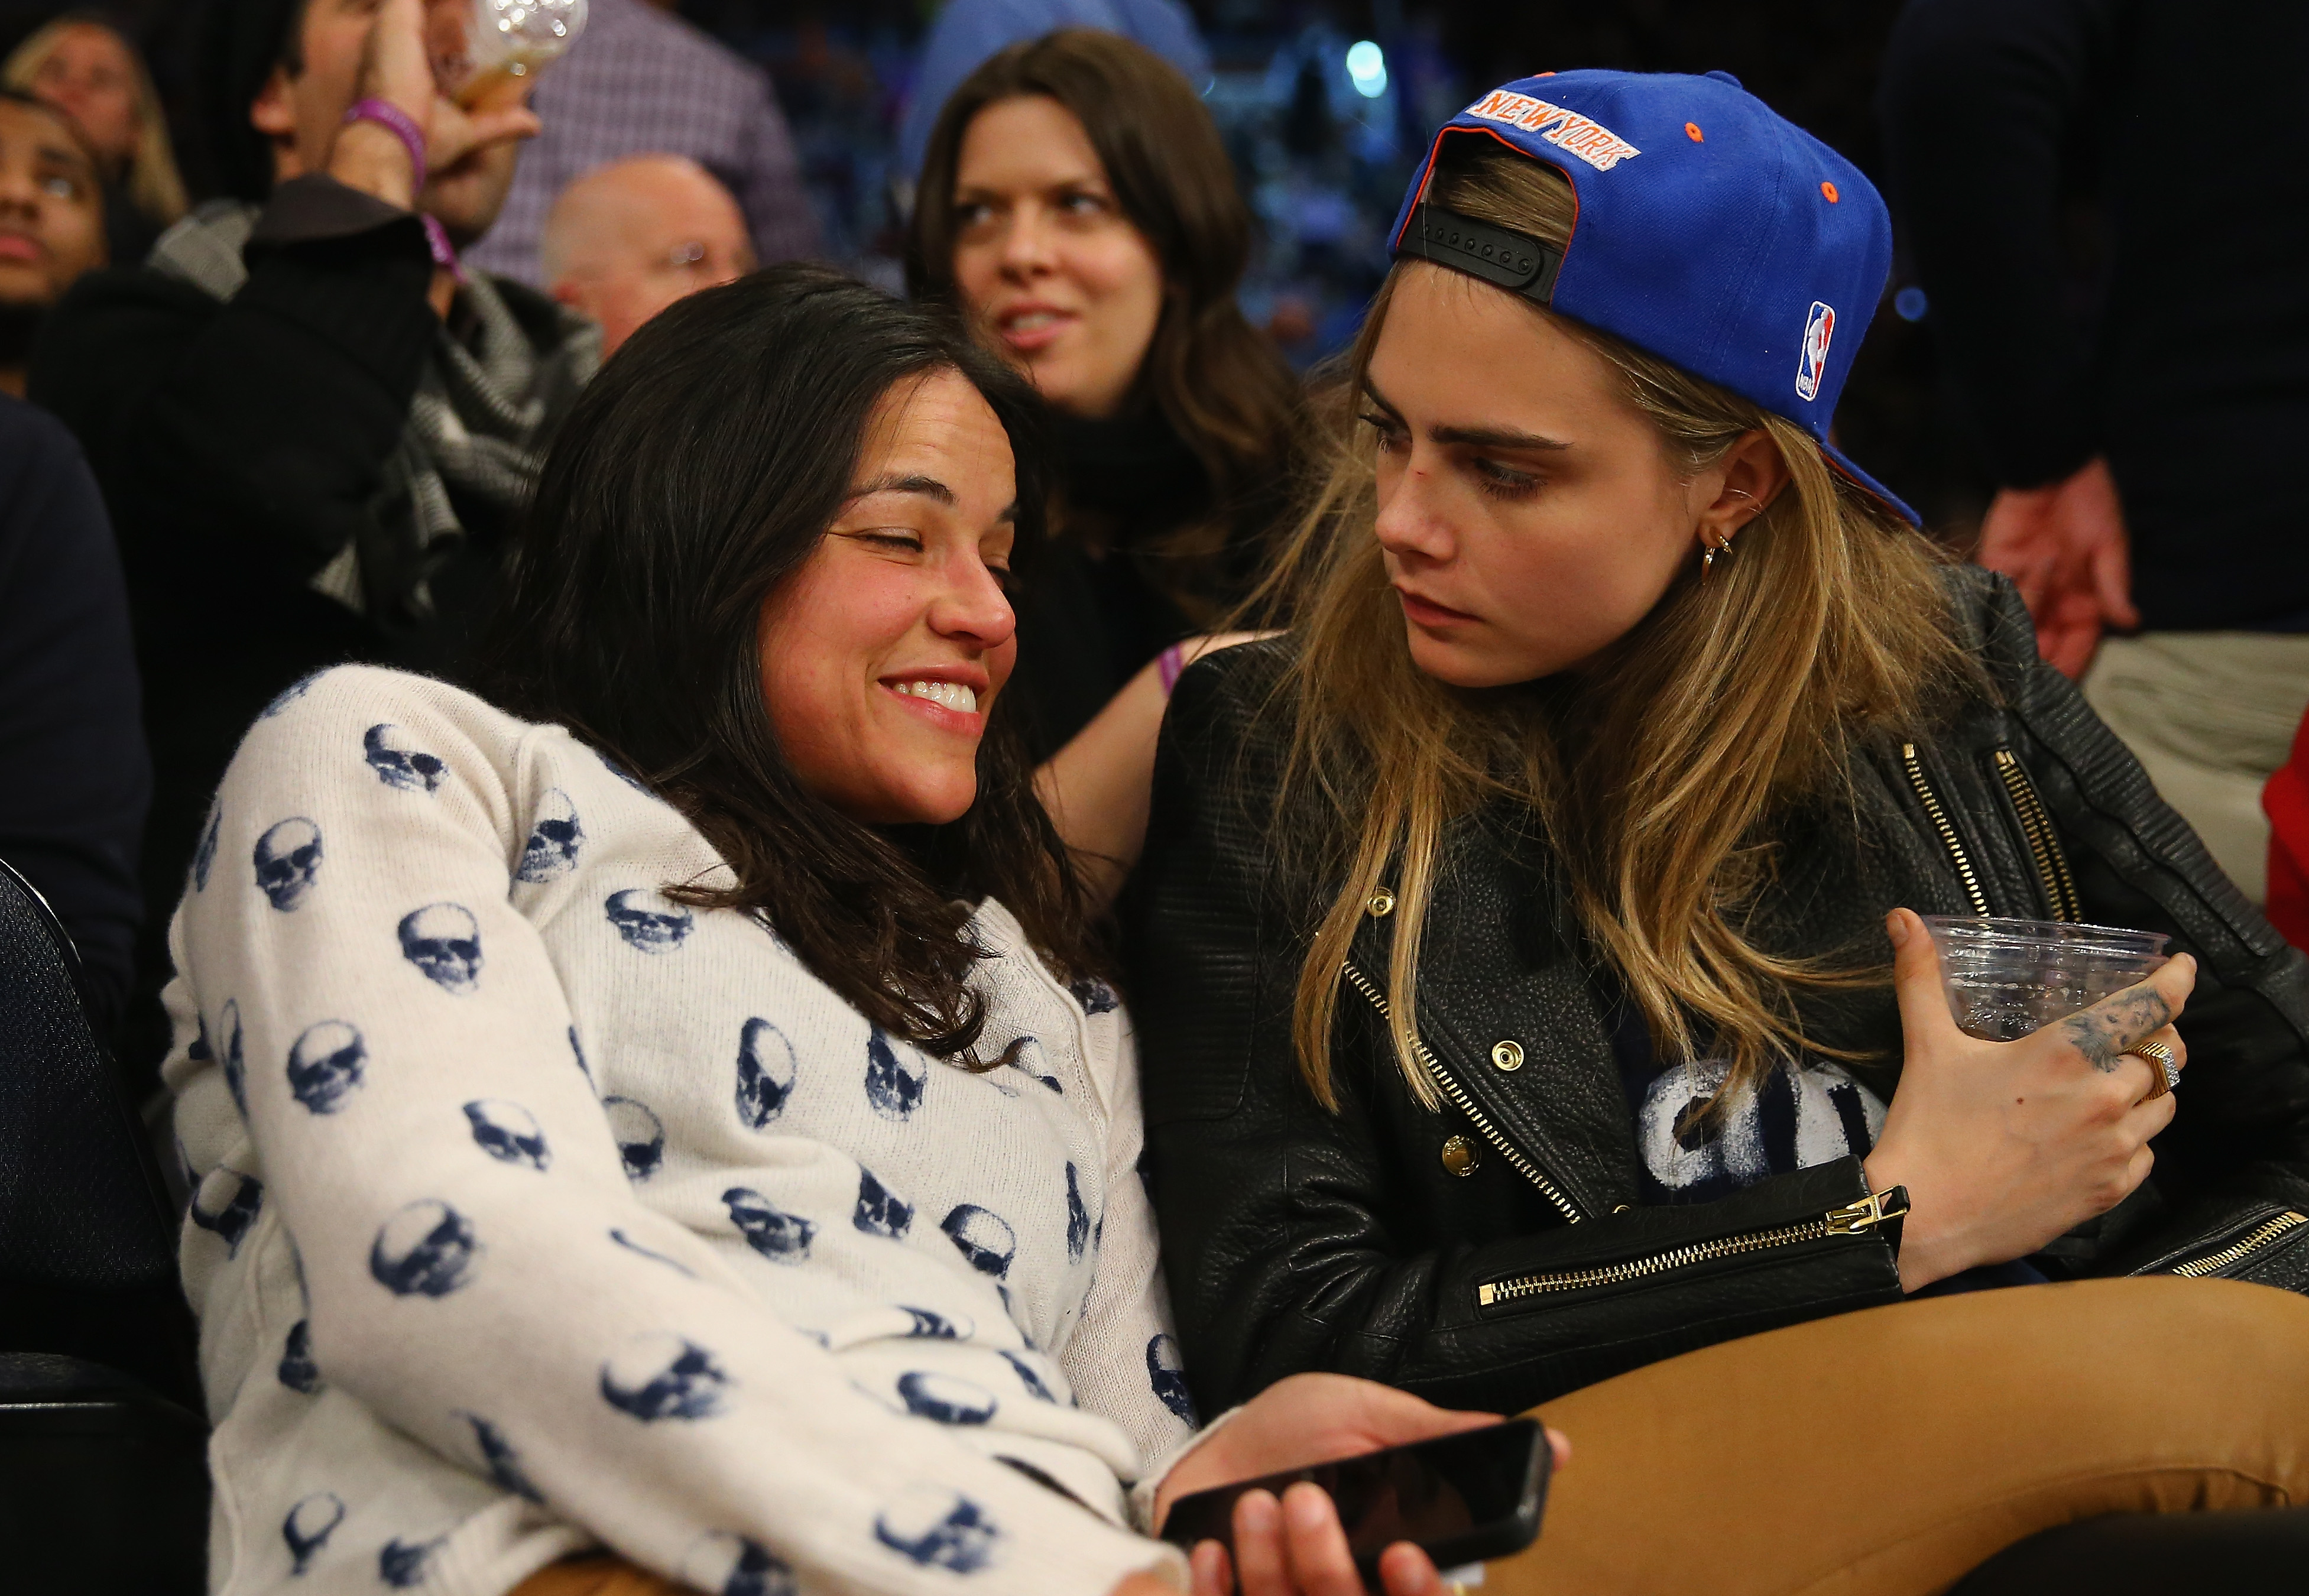 cara delevingne and michelle rodriguez - HD3906×2700